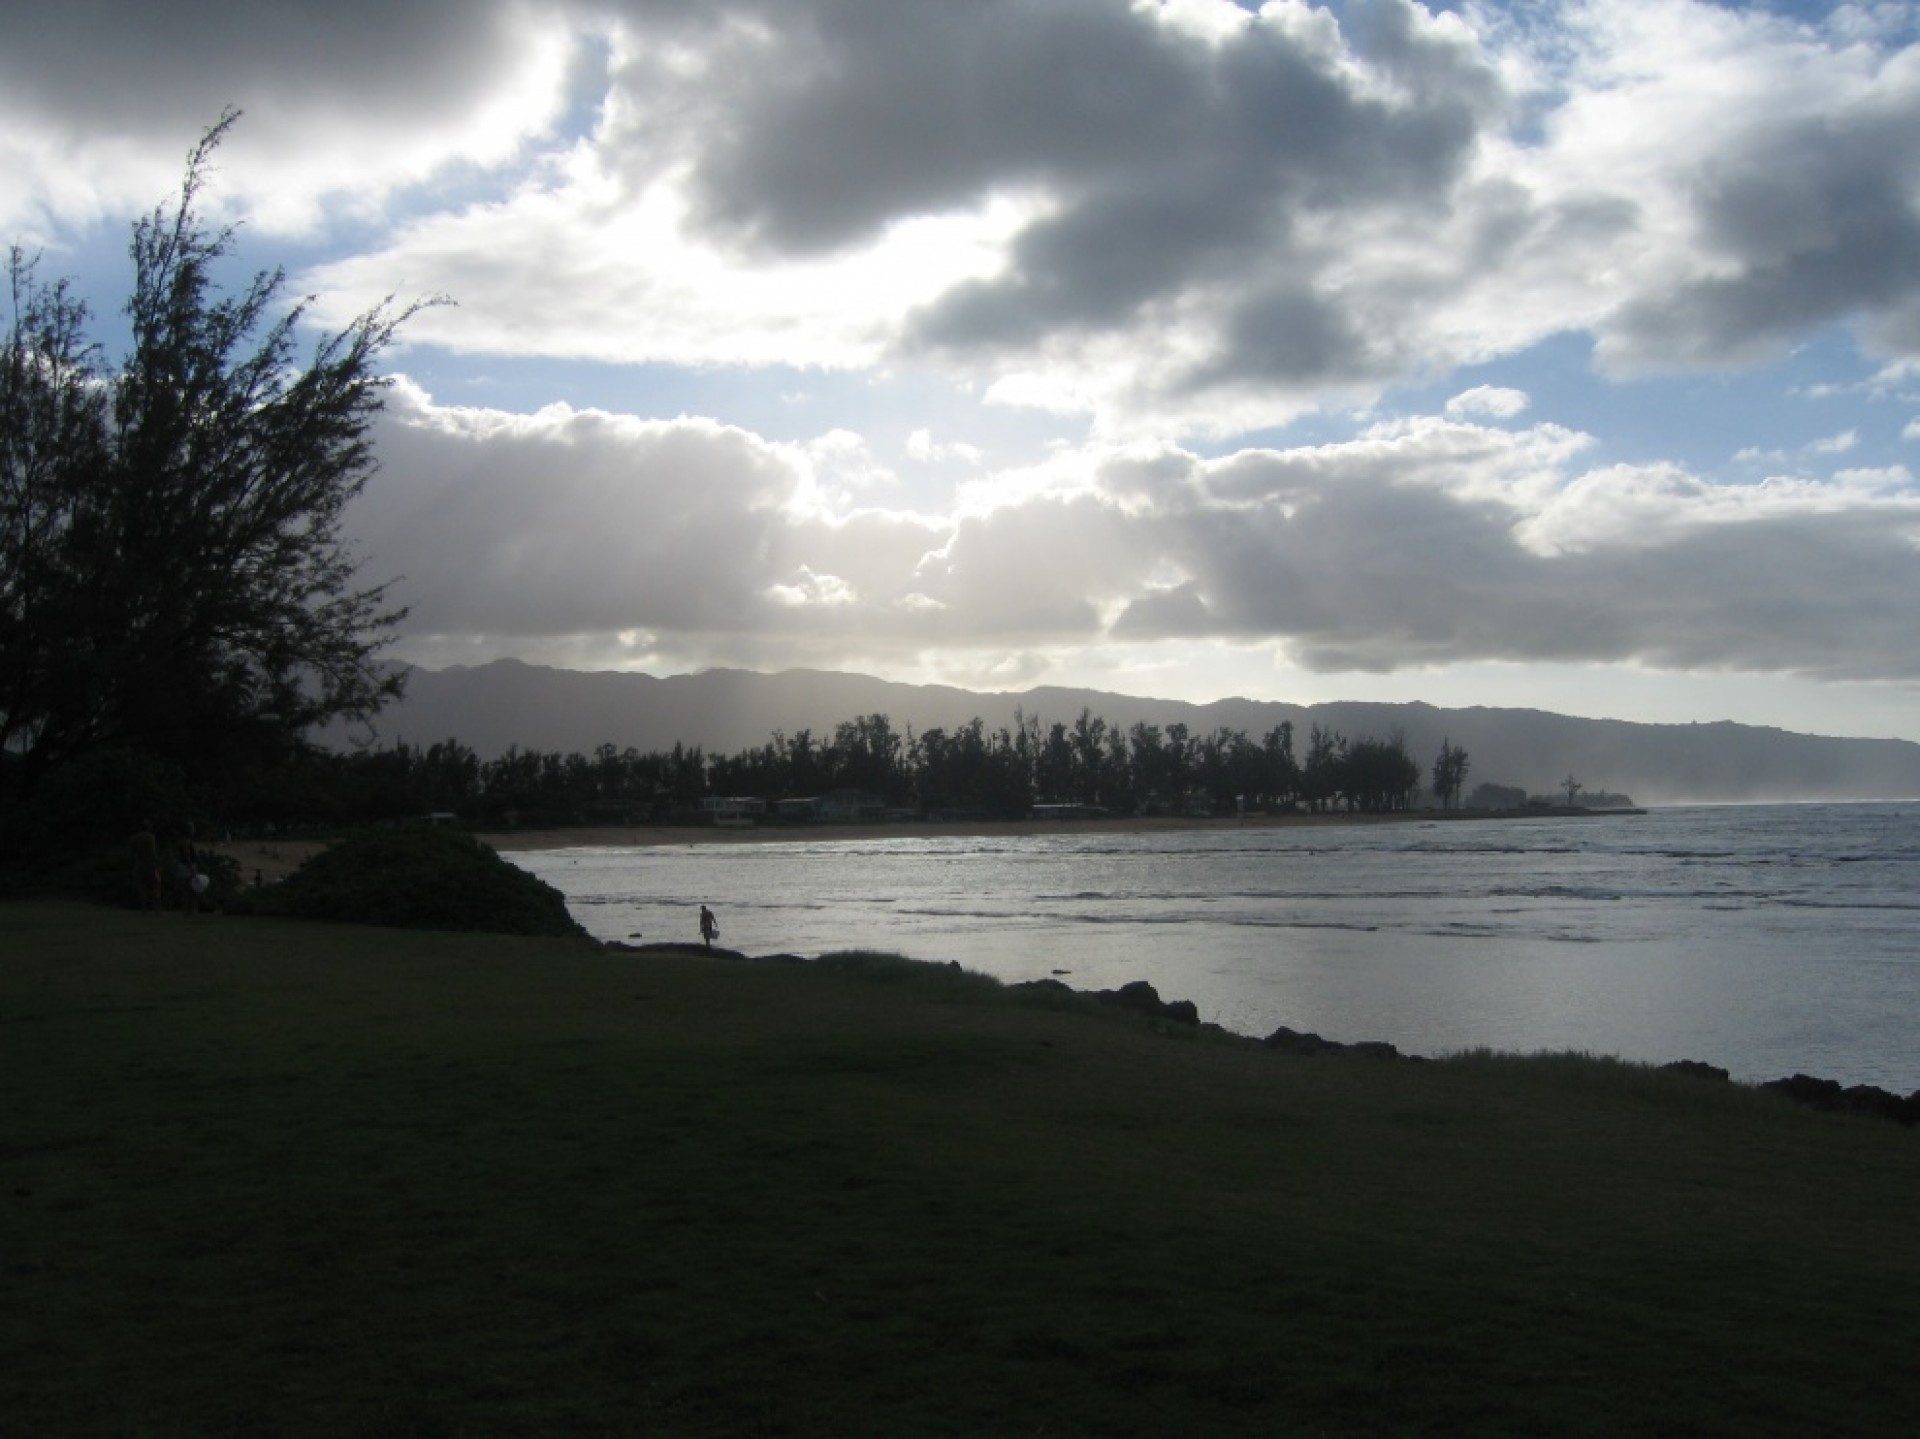 Gregory Borne's photo of Hale'iwa